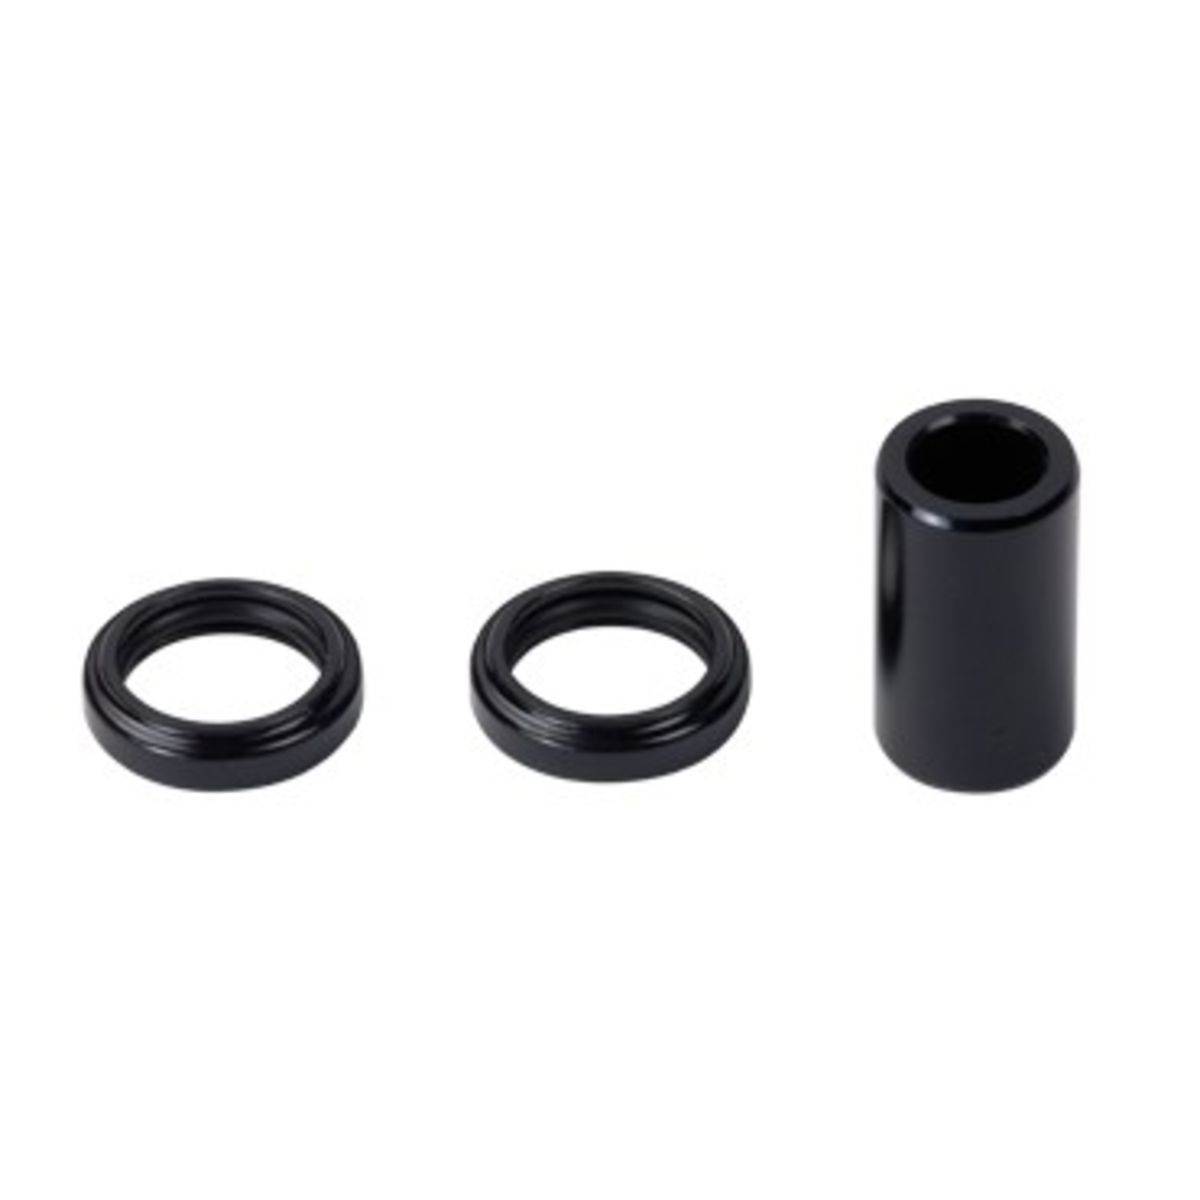 "½"" Metric Shock Bushing Kit"